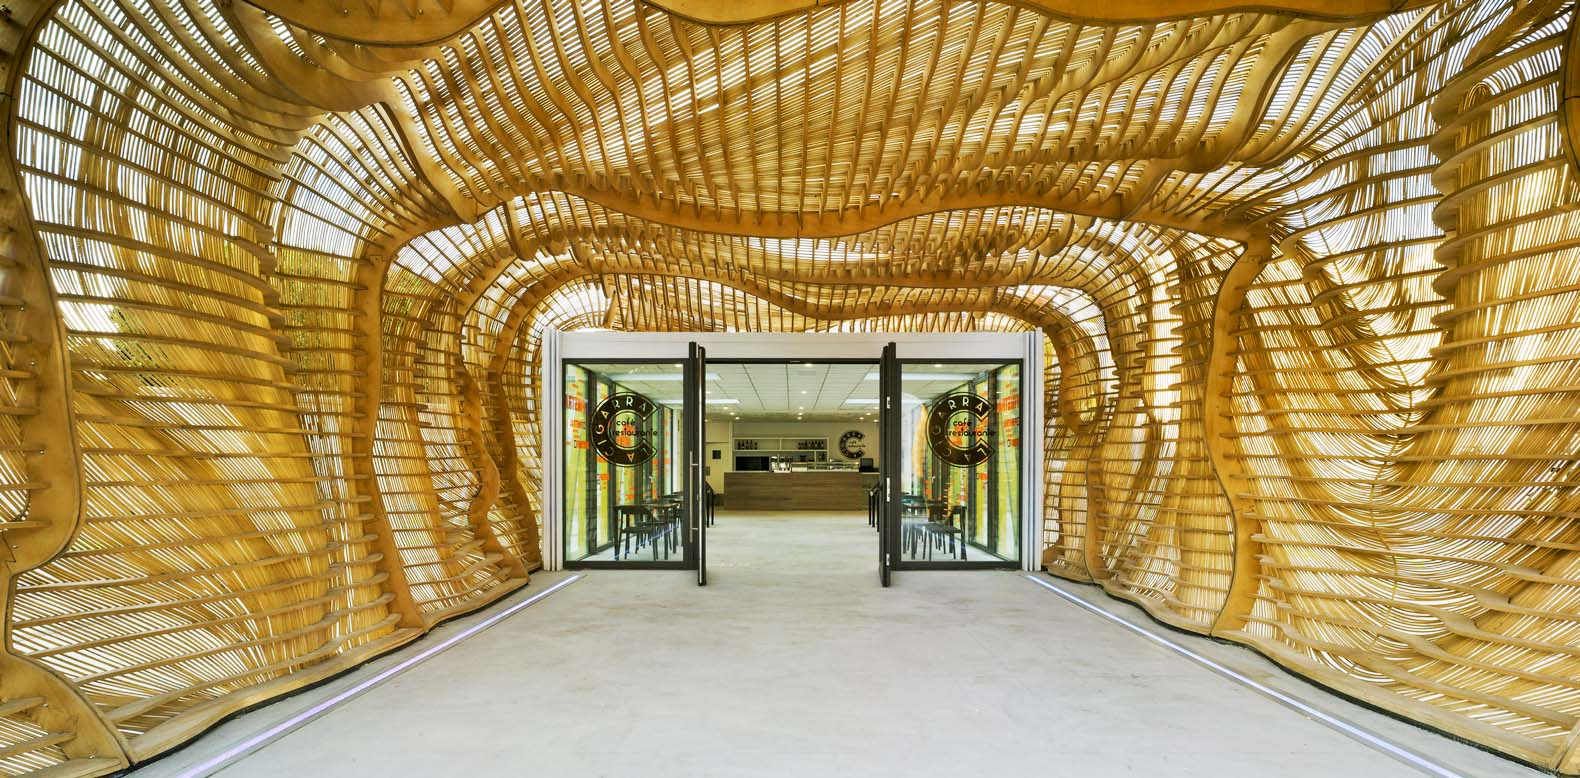 Creative Cicada pavilion in Spain mimics the body of an insect